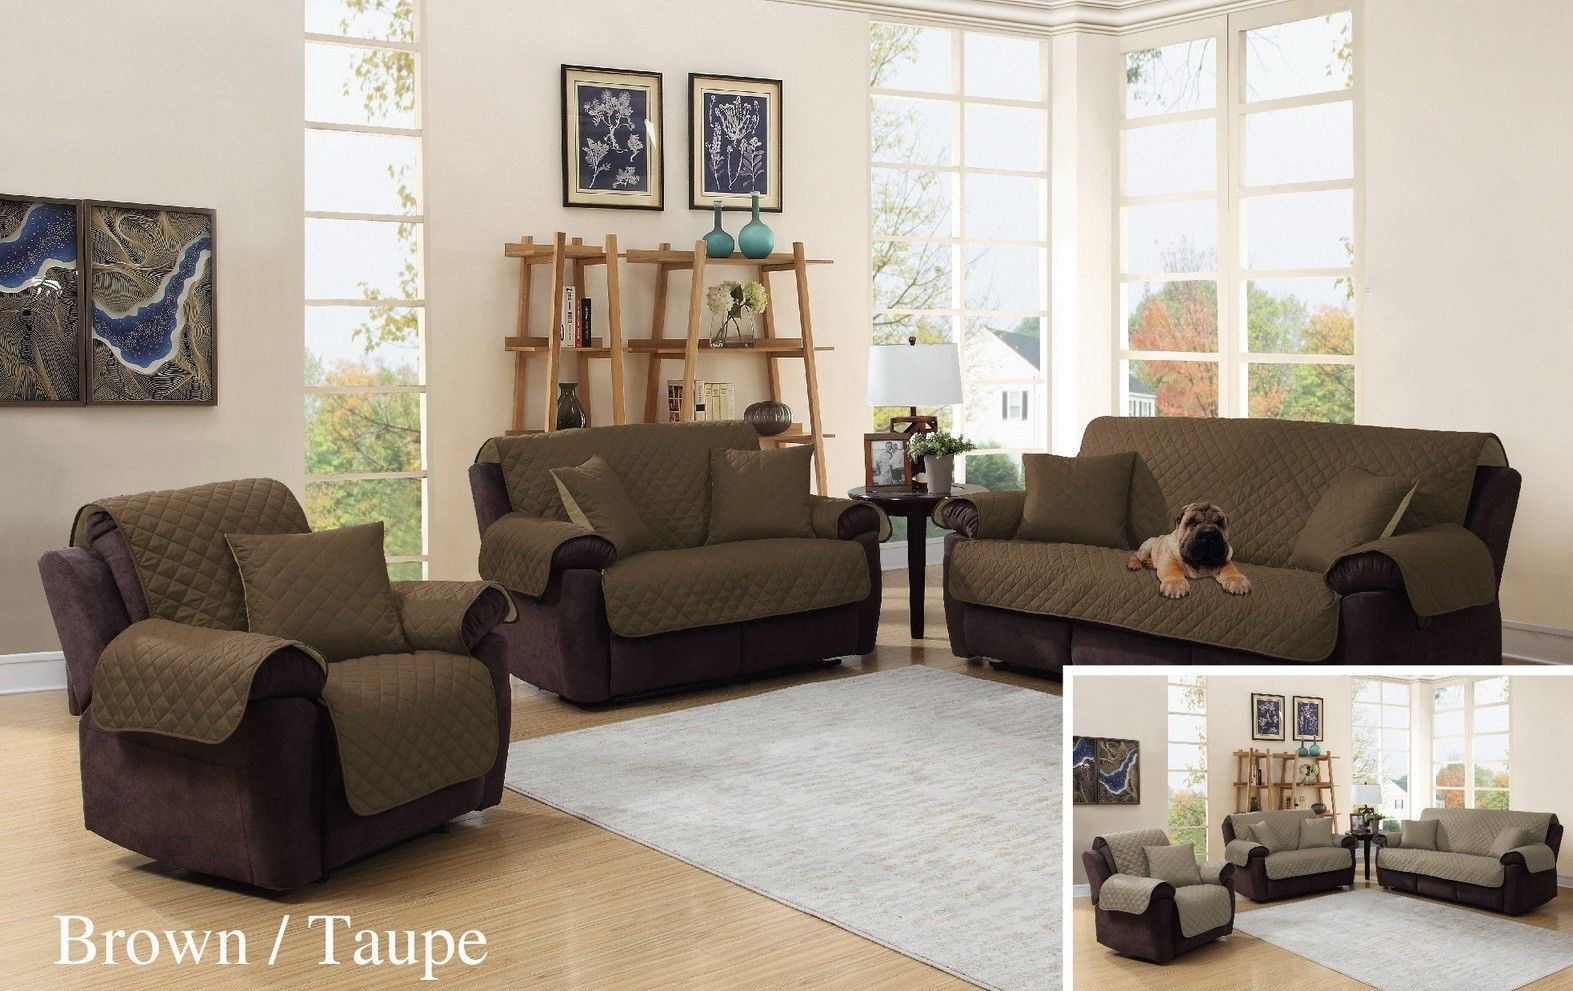 Brown/Taupe 3 Piece Reversible Quilted Microfiber Sofa Furniture Protector  Set, One (